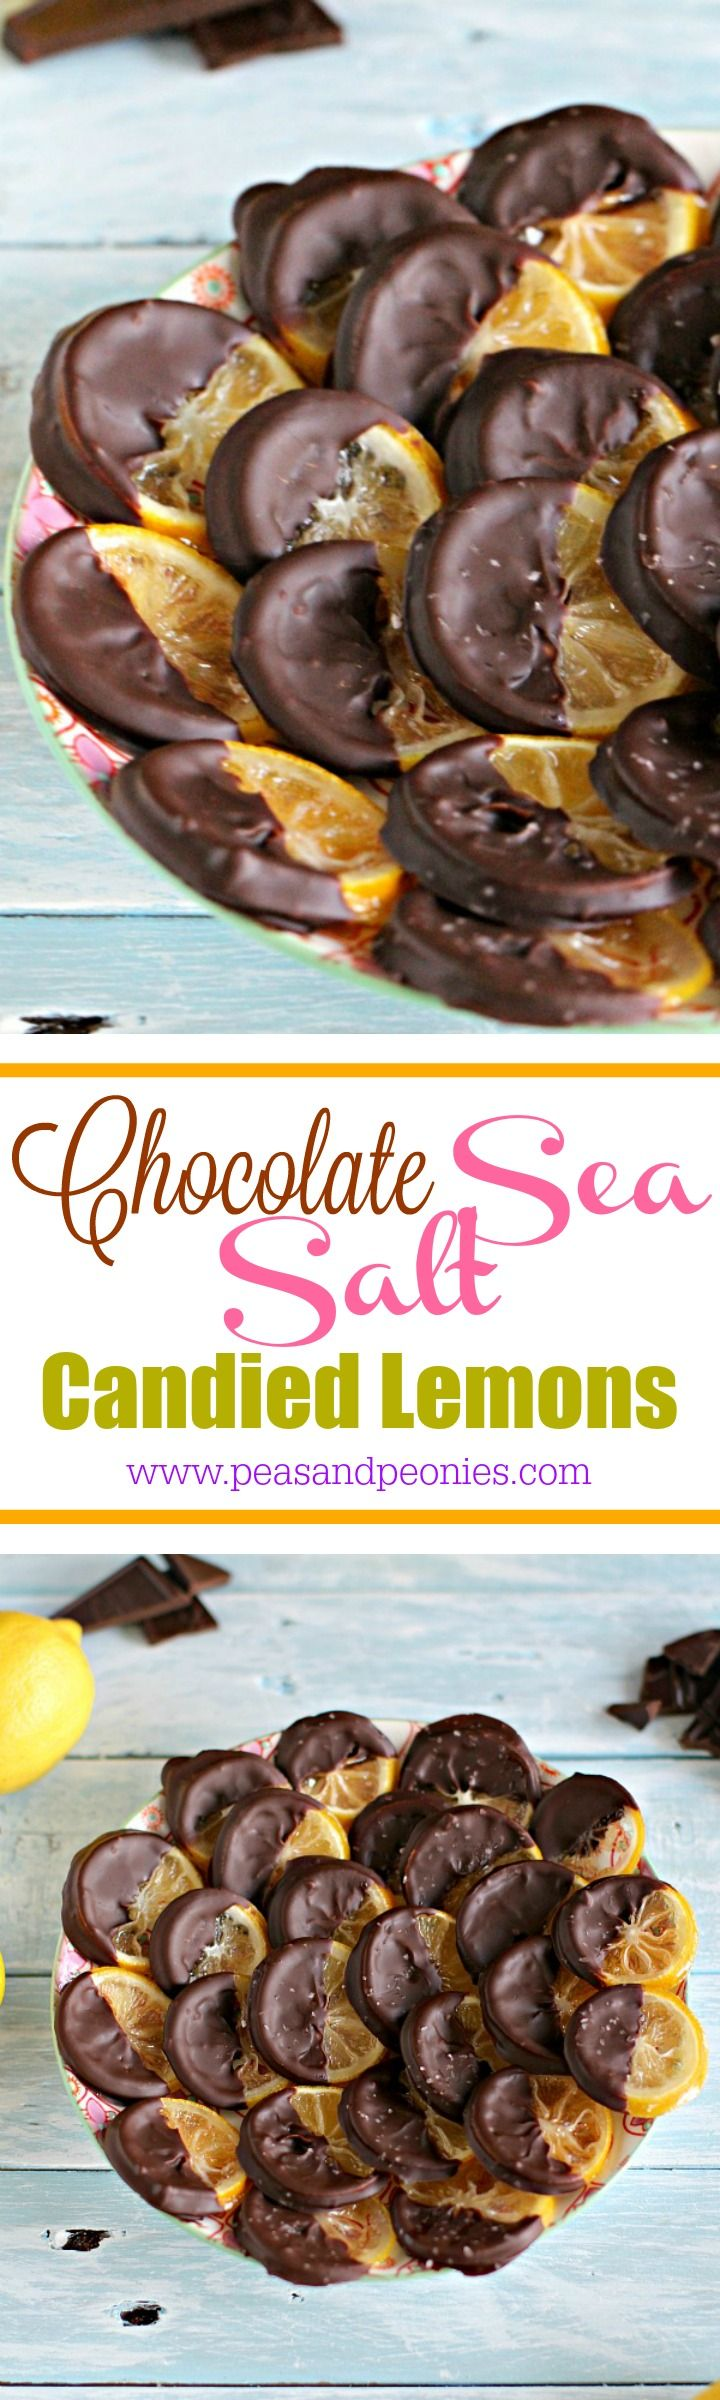 Chocolate Dipped Candied Lemon Rounds - Vegan and gluten free these chocolate dipped candied lemon rounds are sweet, chewy and refreshing, finished with a dash of sea salt for a perfect snack. Peas and Peonies